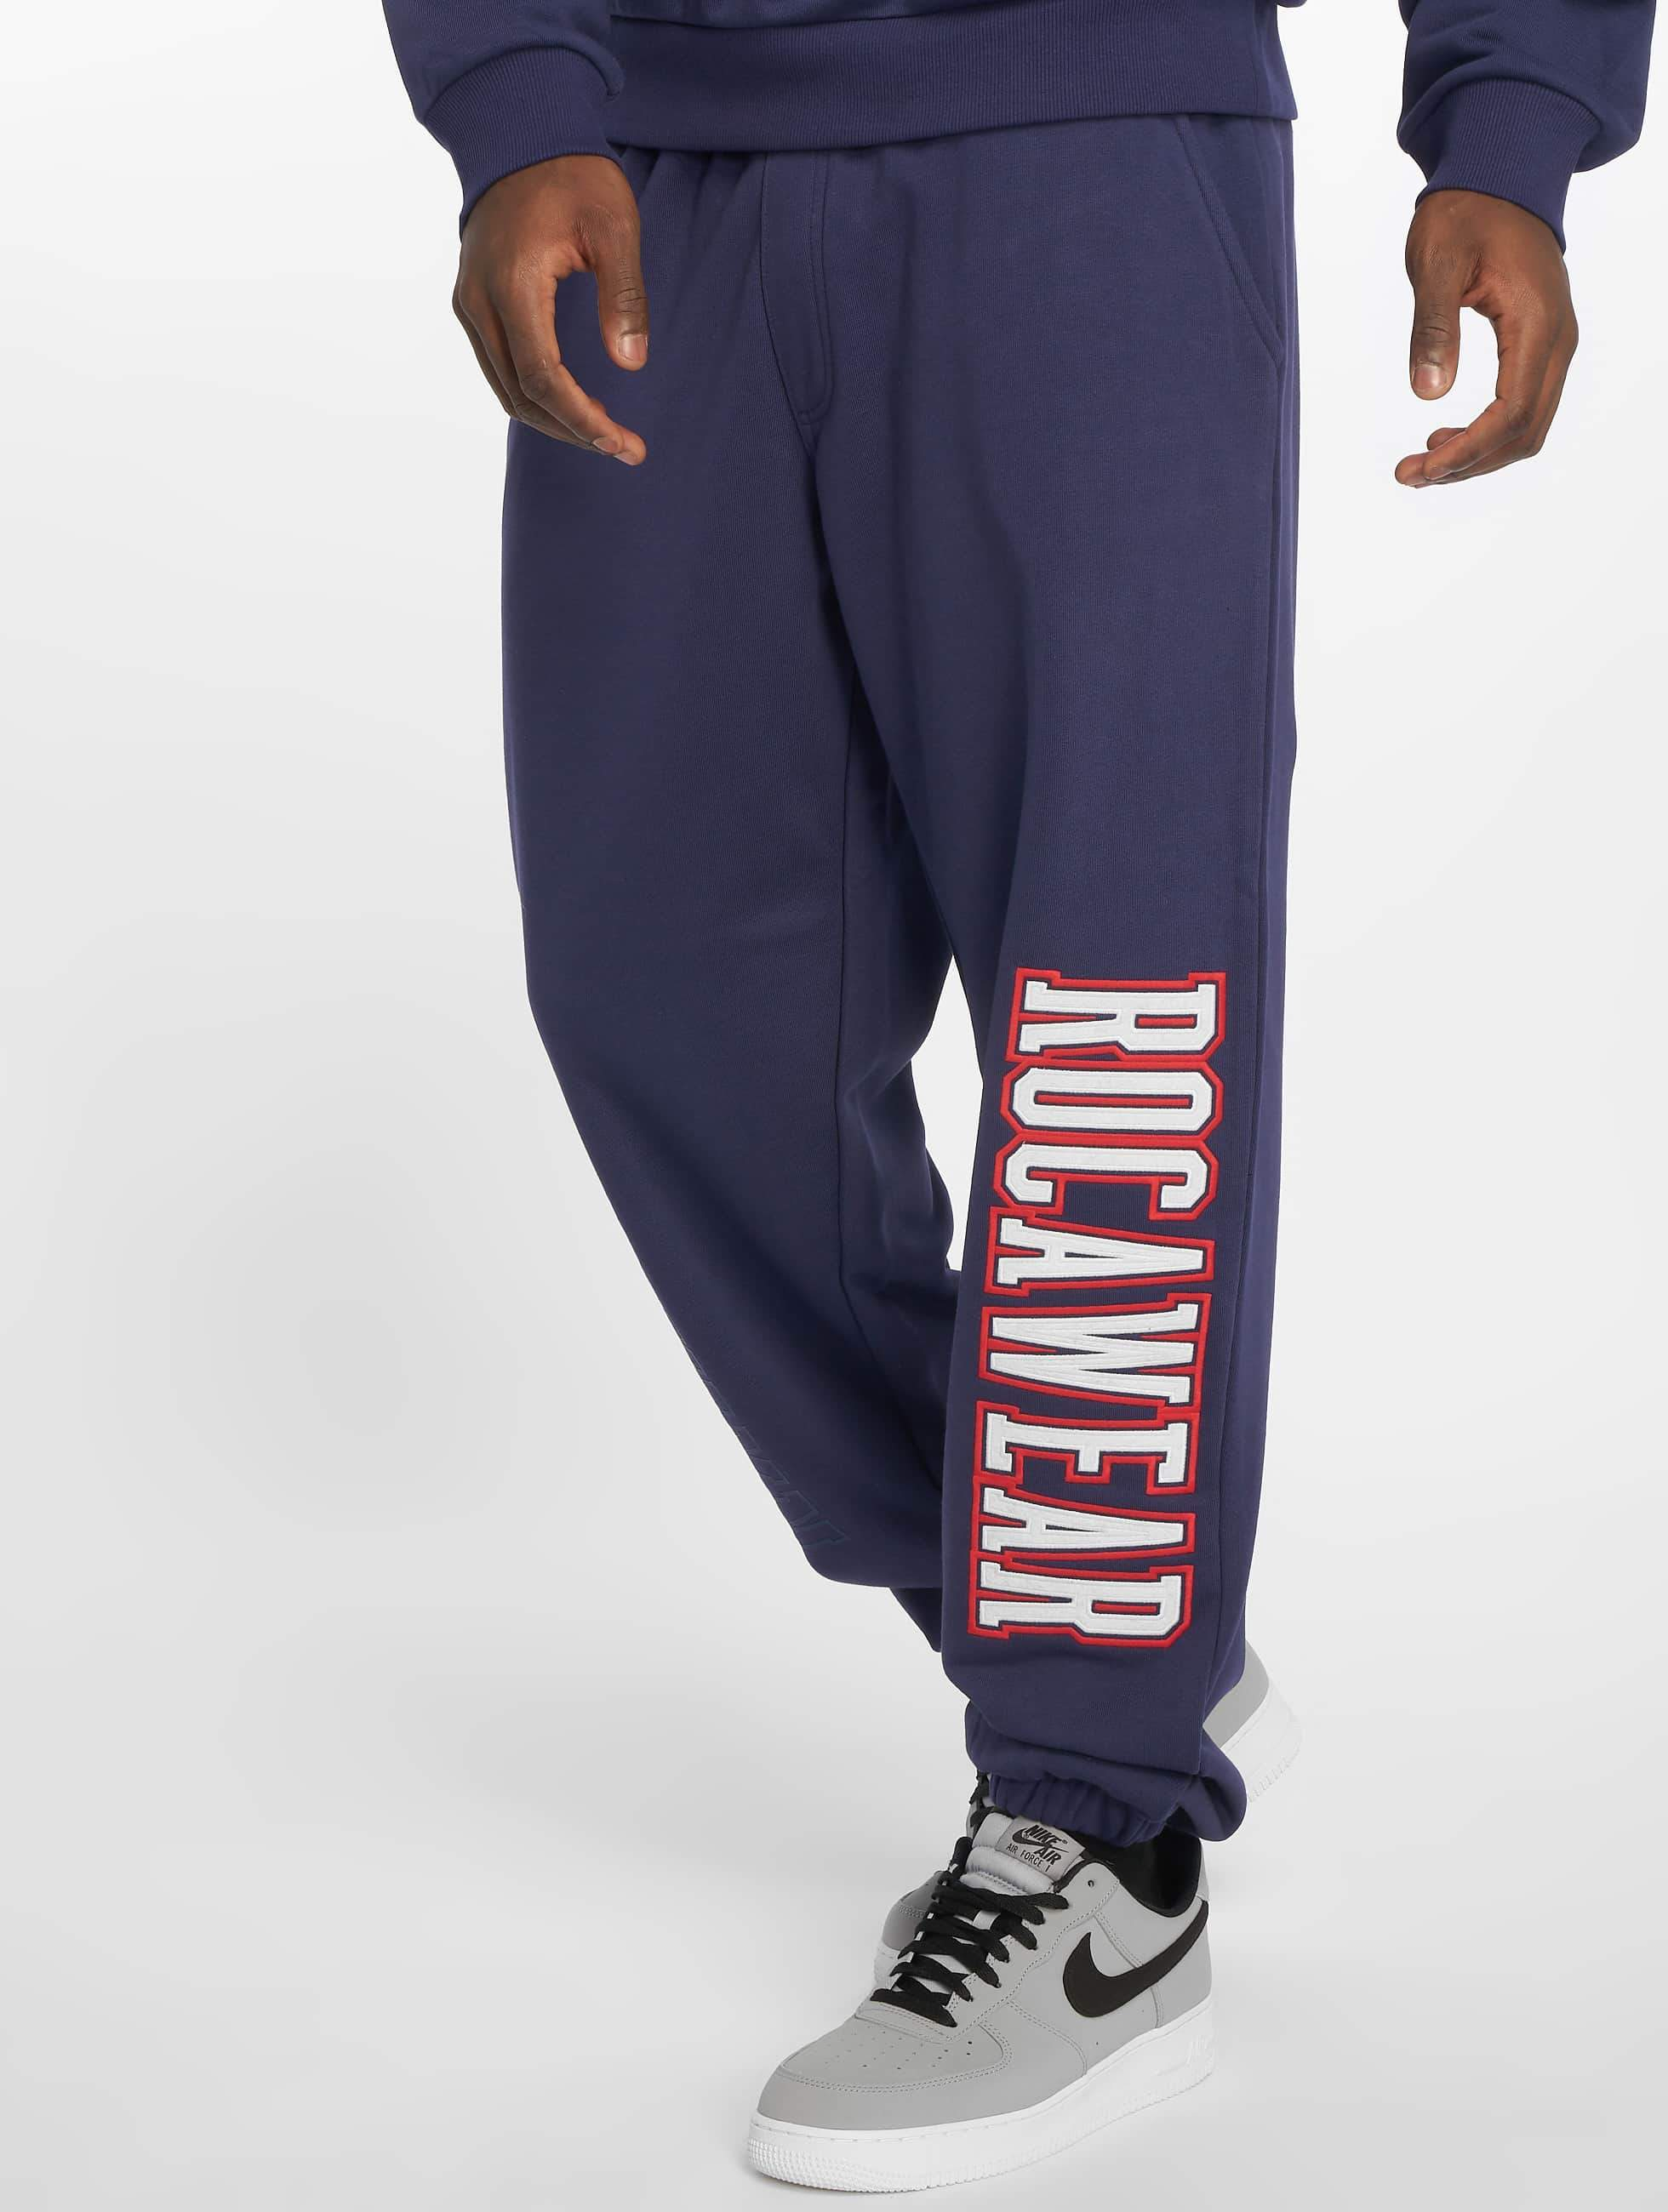 Rocawear / Sweat Pant Brooklyn in blue M